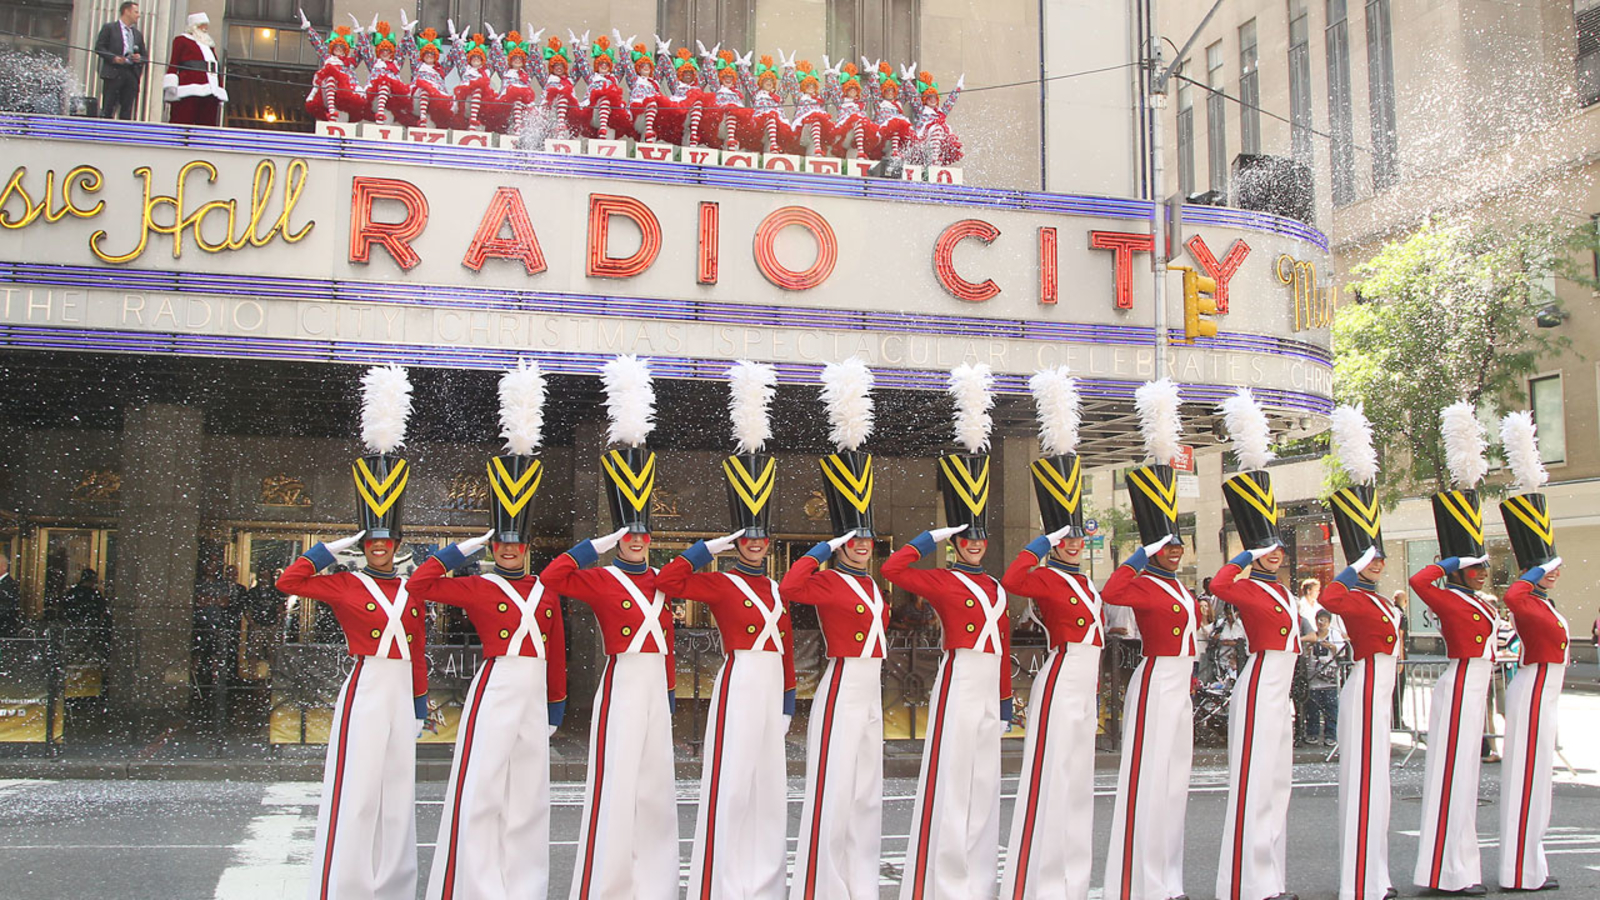 2020 Radio City Christmas Spectacular COVID NYC Update: 2020 Radio City Christmas Spectacular canceled